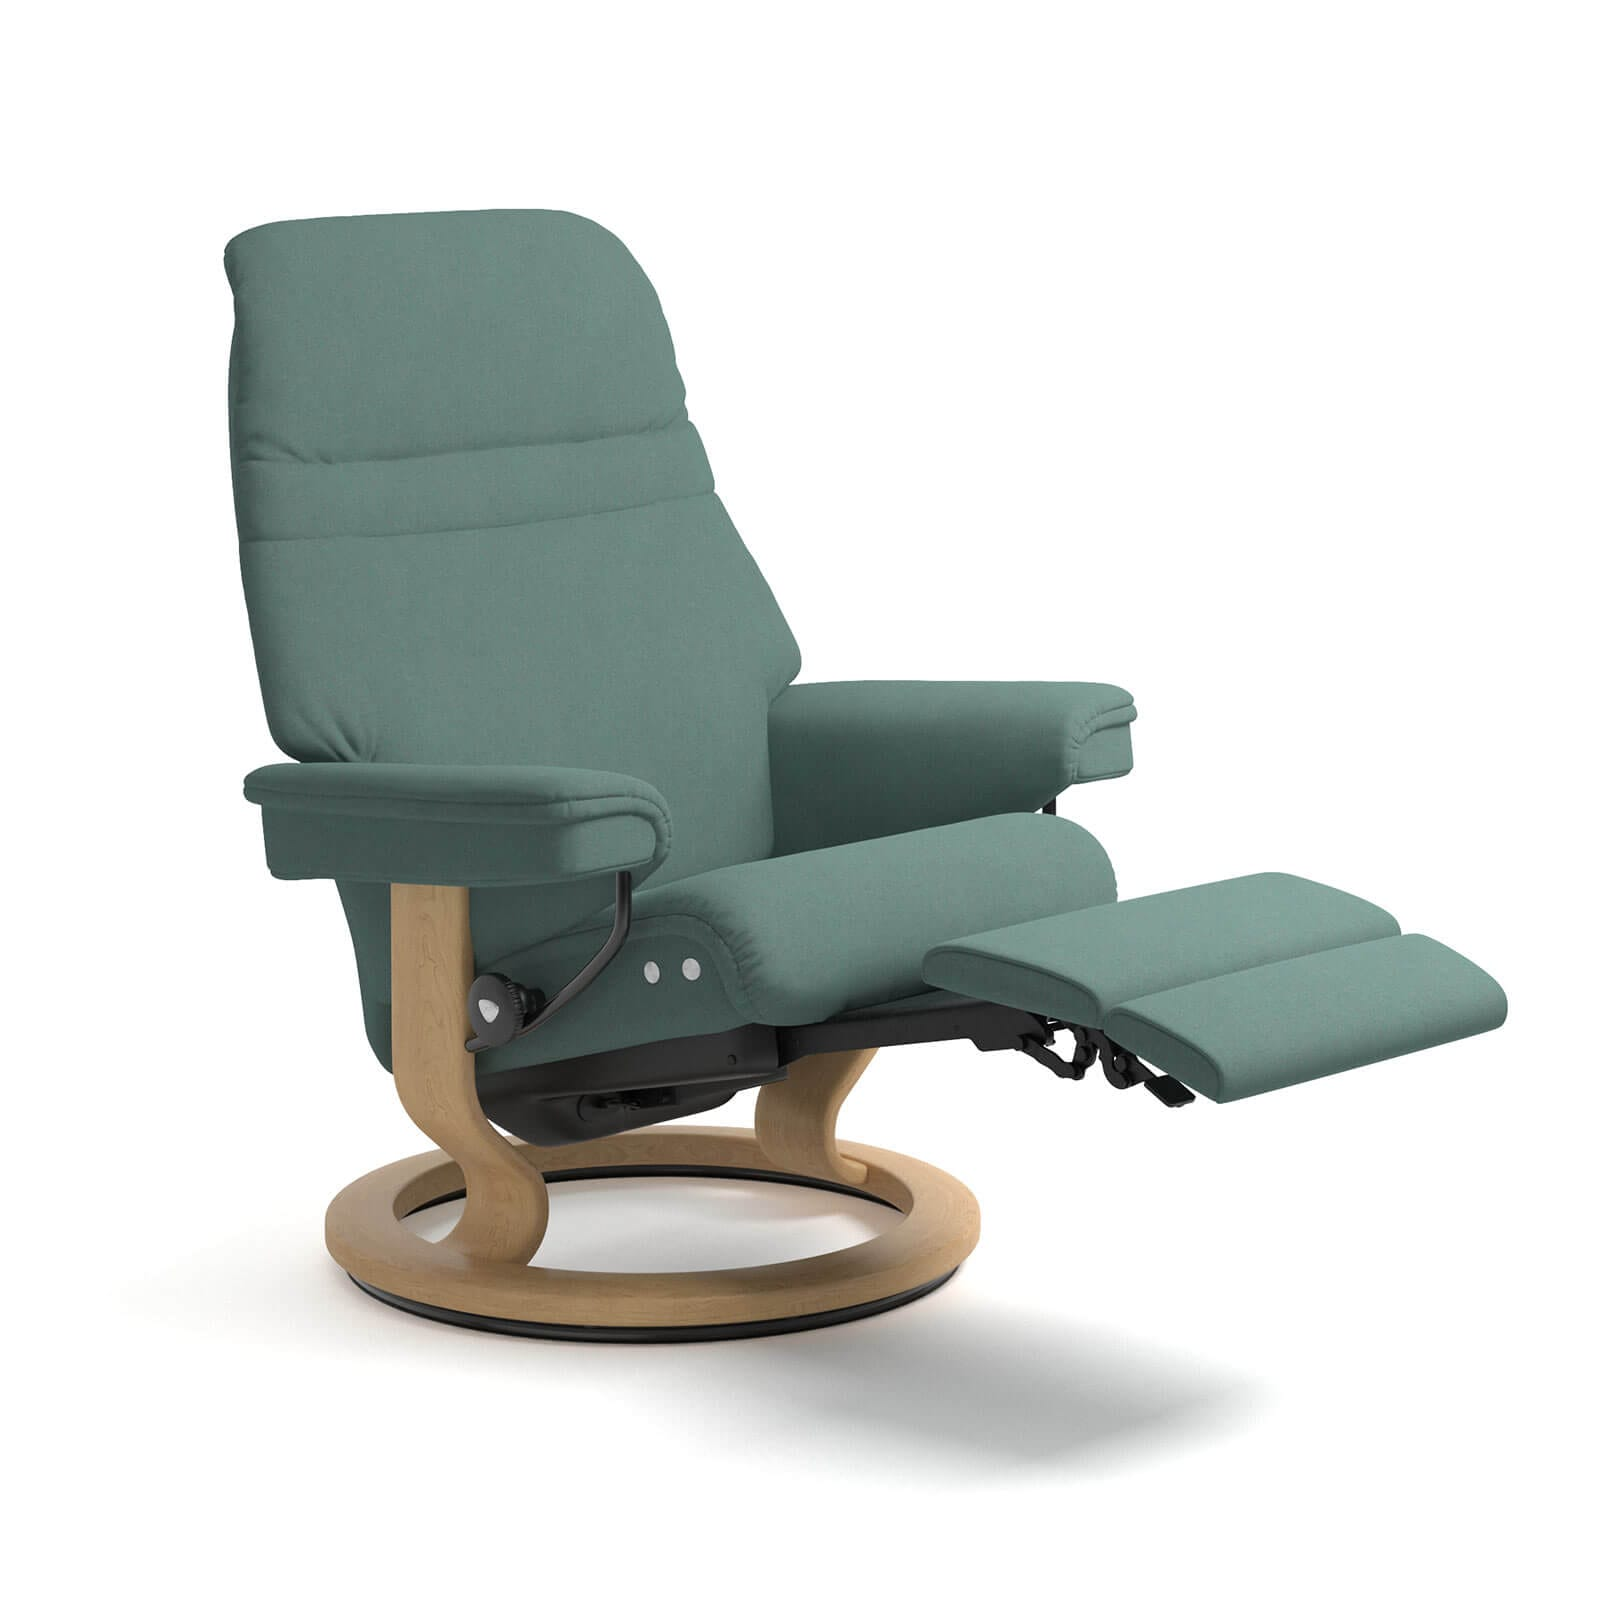 Stressless Sunrise Legcomfort Aqua Stressless Online Shop